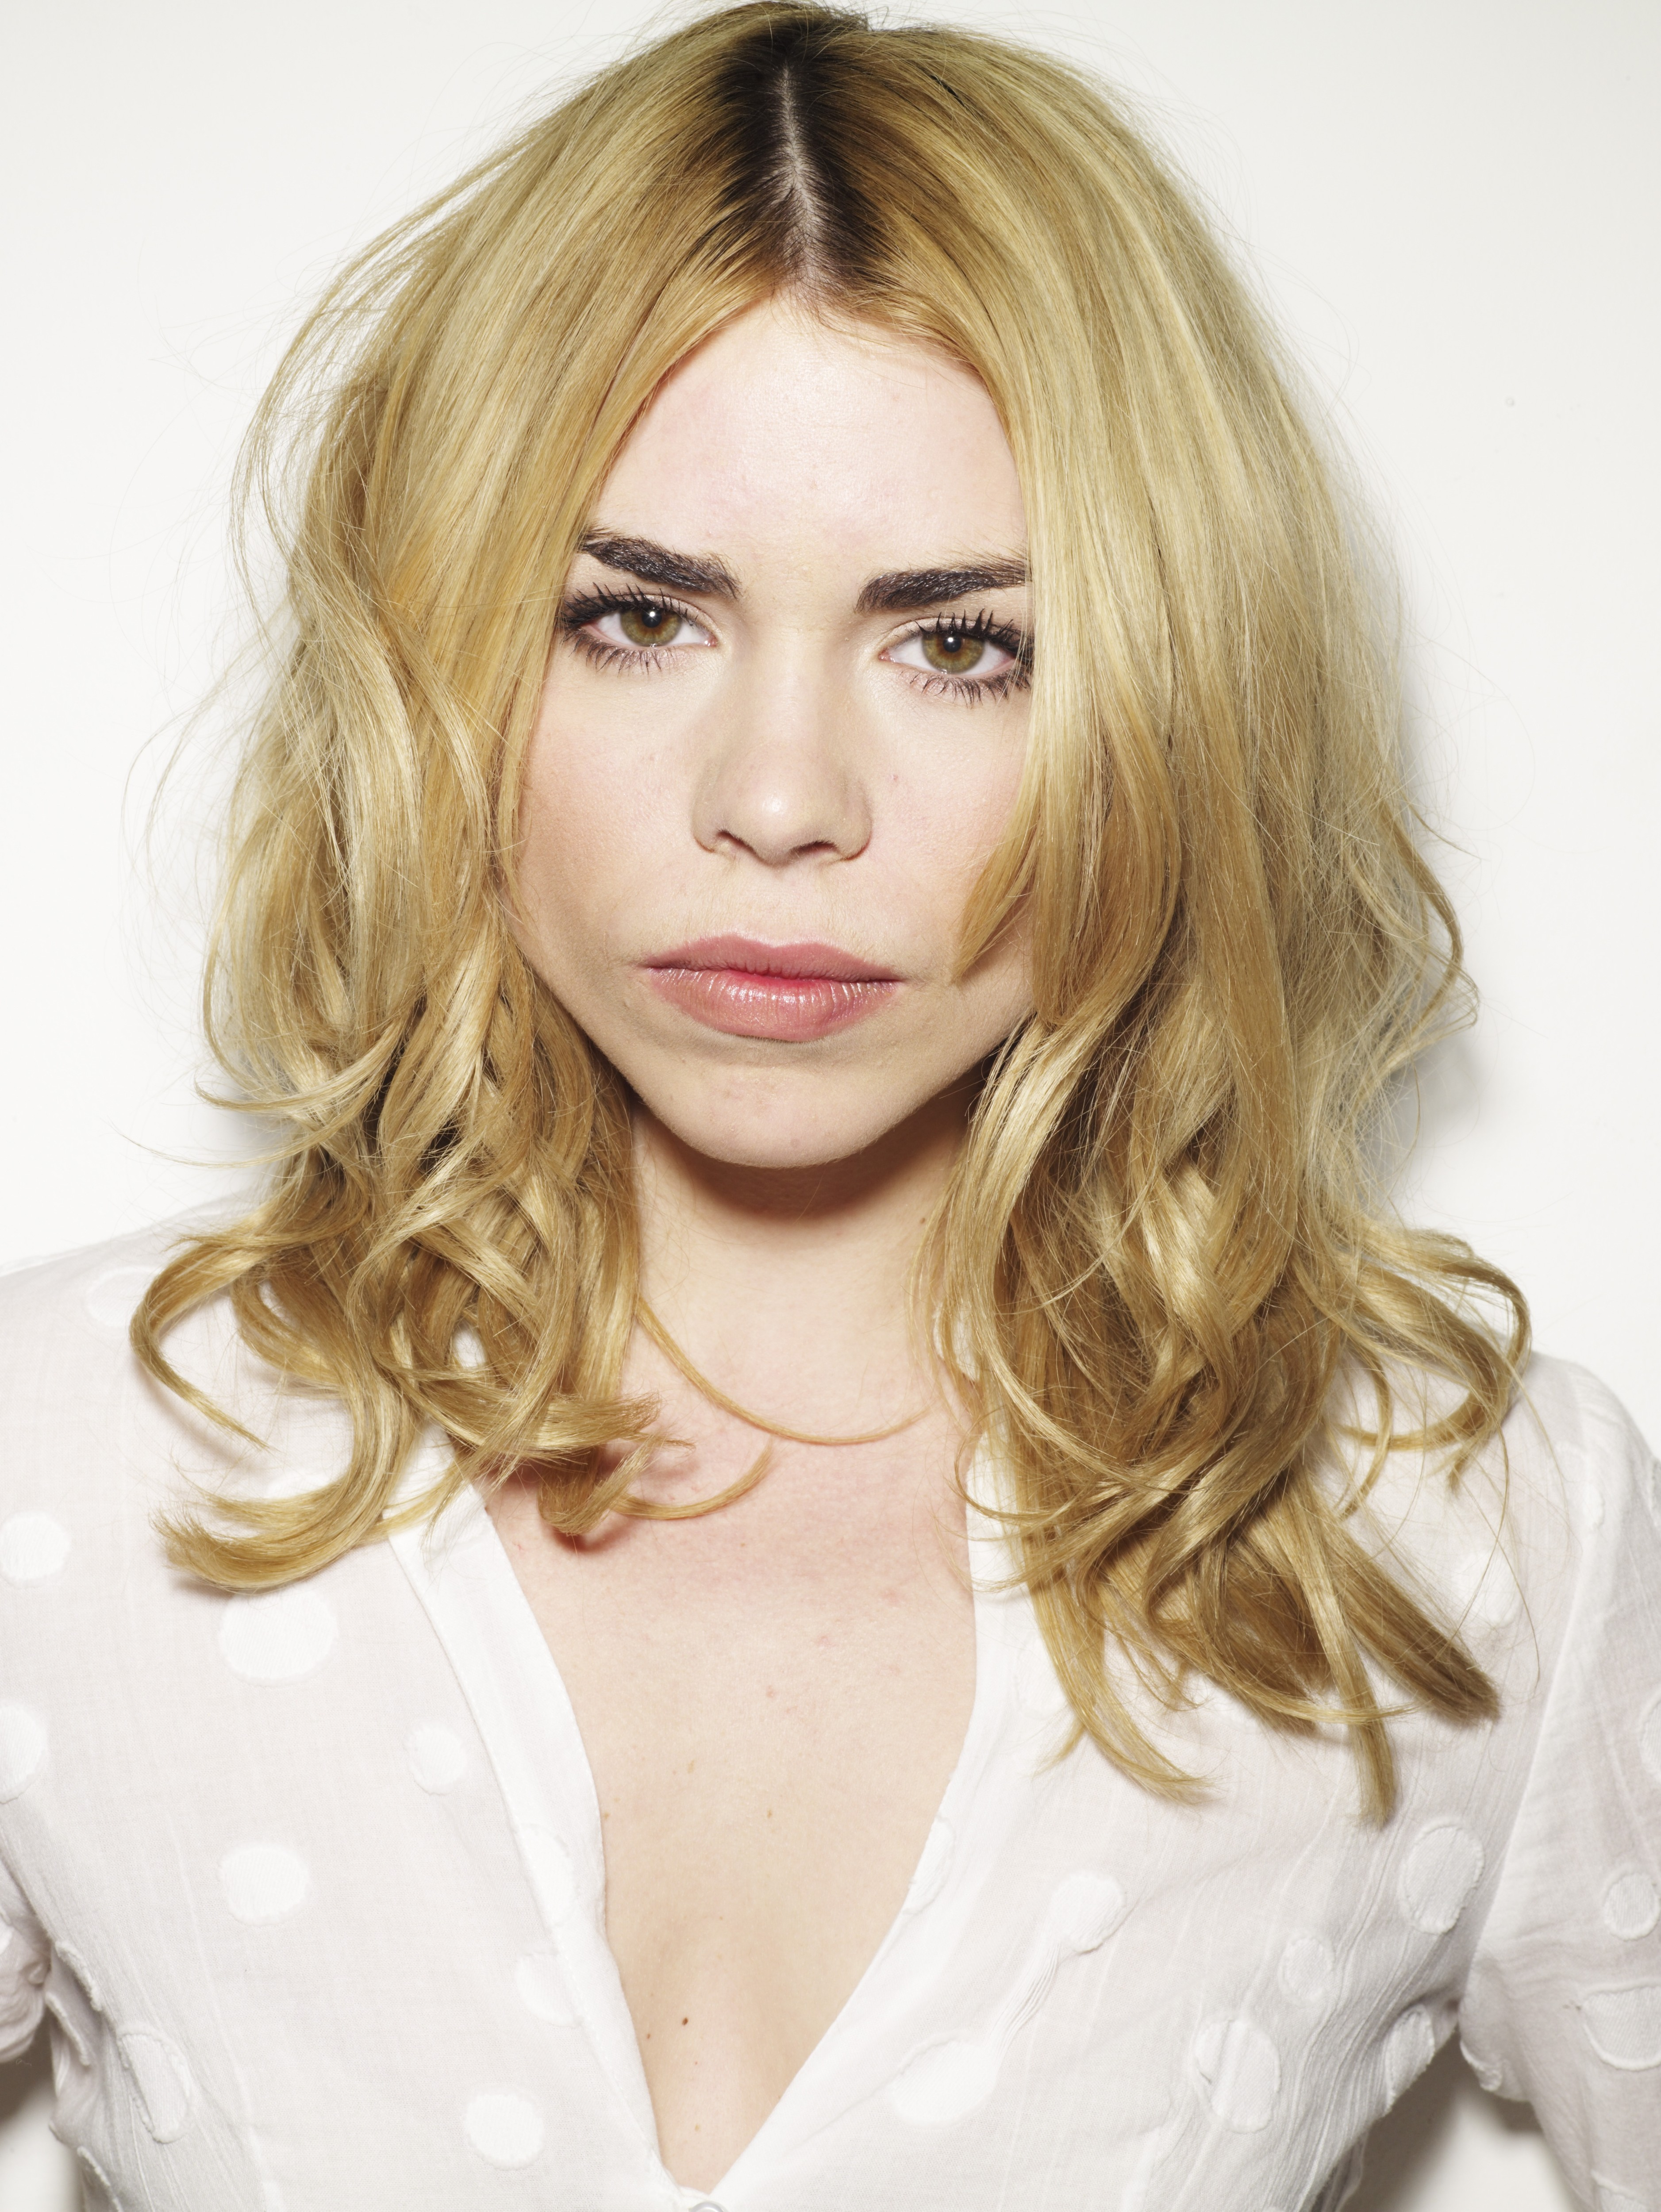 Dimensions Of A Wallpaper For Iphone X Billie Piper Photos Hd Full Hd Pictures